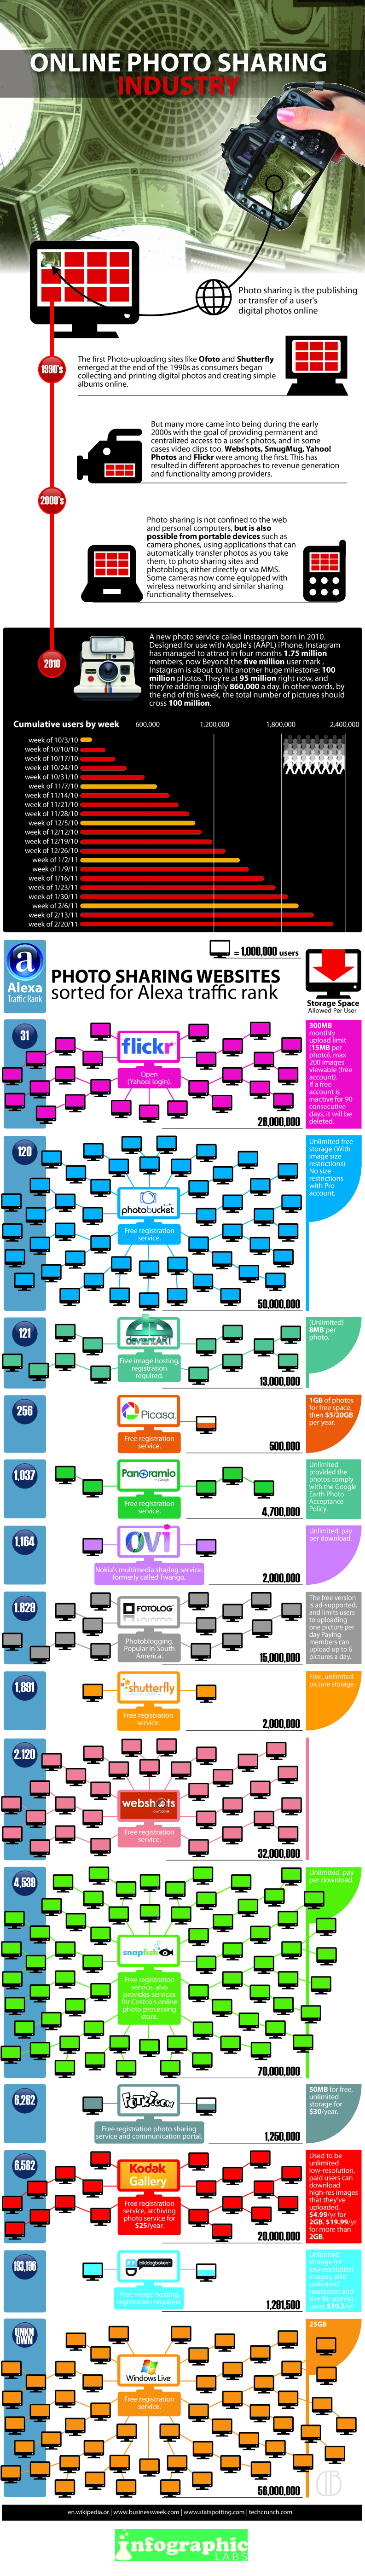 Online Photo Sharing Services Infographic